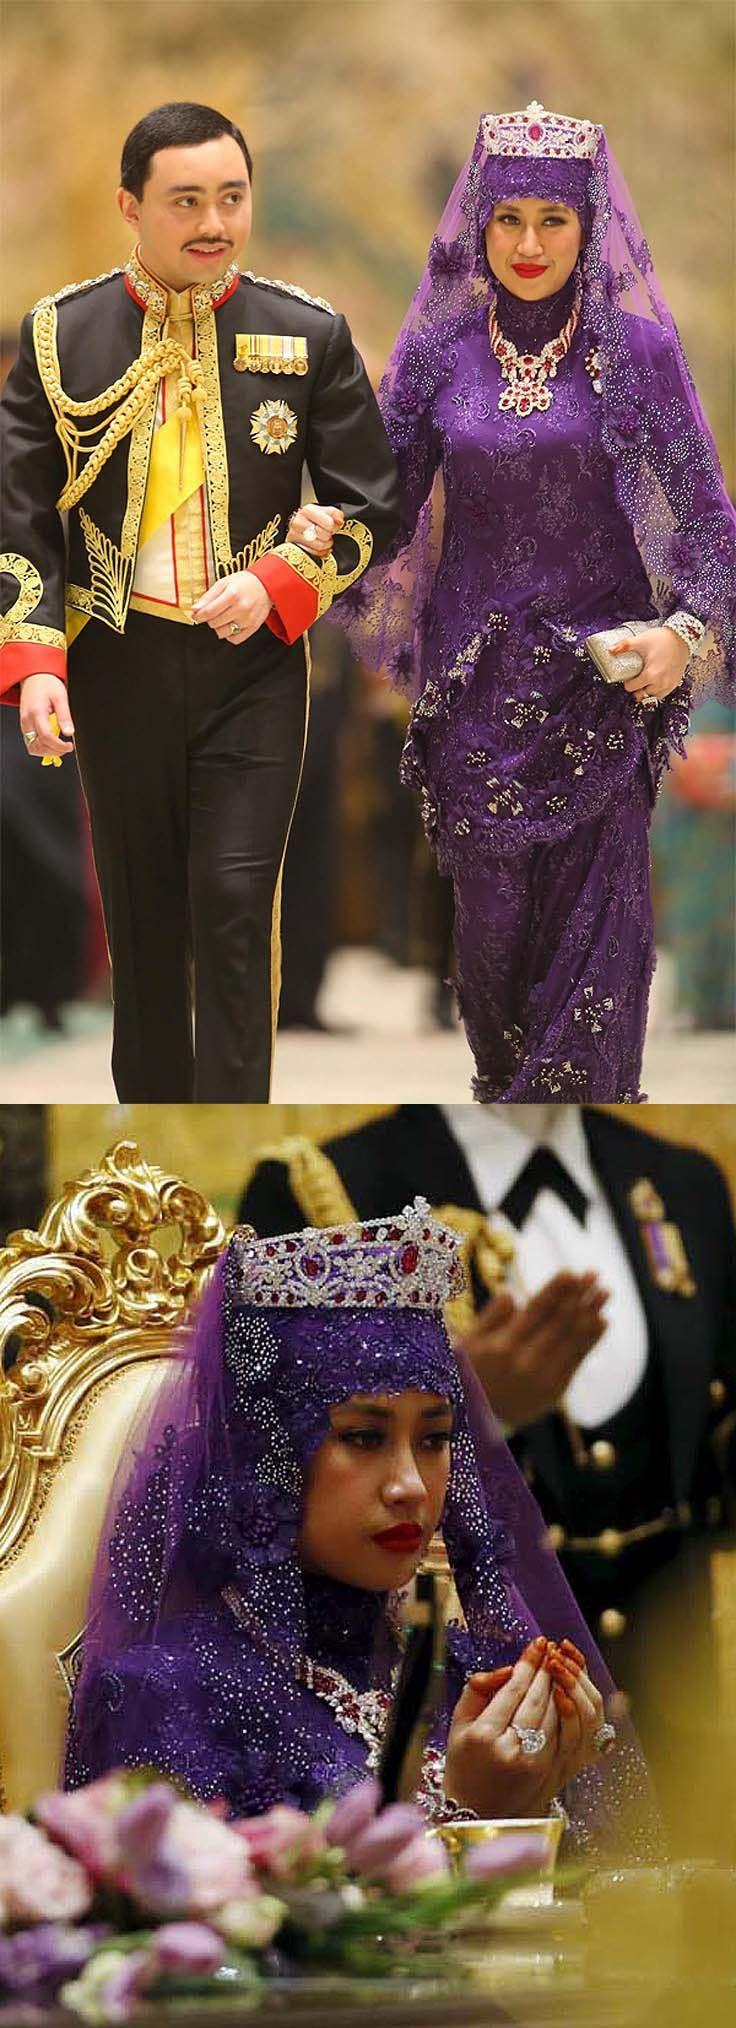 The newest member of the royal family changed into a beaded purple gown for the wedding banquet. She wore a bedazzled veil, along with a stunning diamond necklace set with tens of rubies, and a matching crown set with a scarlet gem the size of a 20-pence piece, a brooch, which was partly hidden by her diaphanous veil, bracelets, a ruby and diamond ring and a huge diamond ring in a platinum setting.